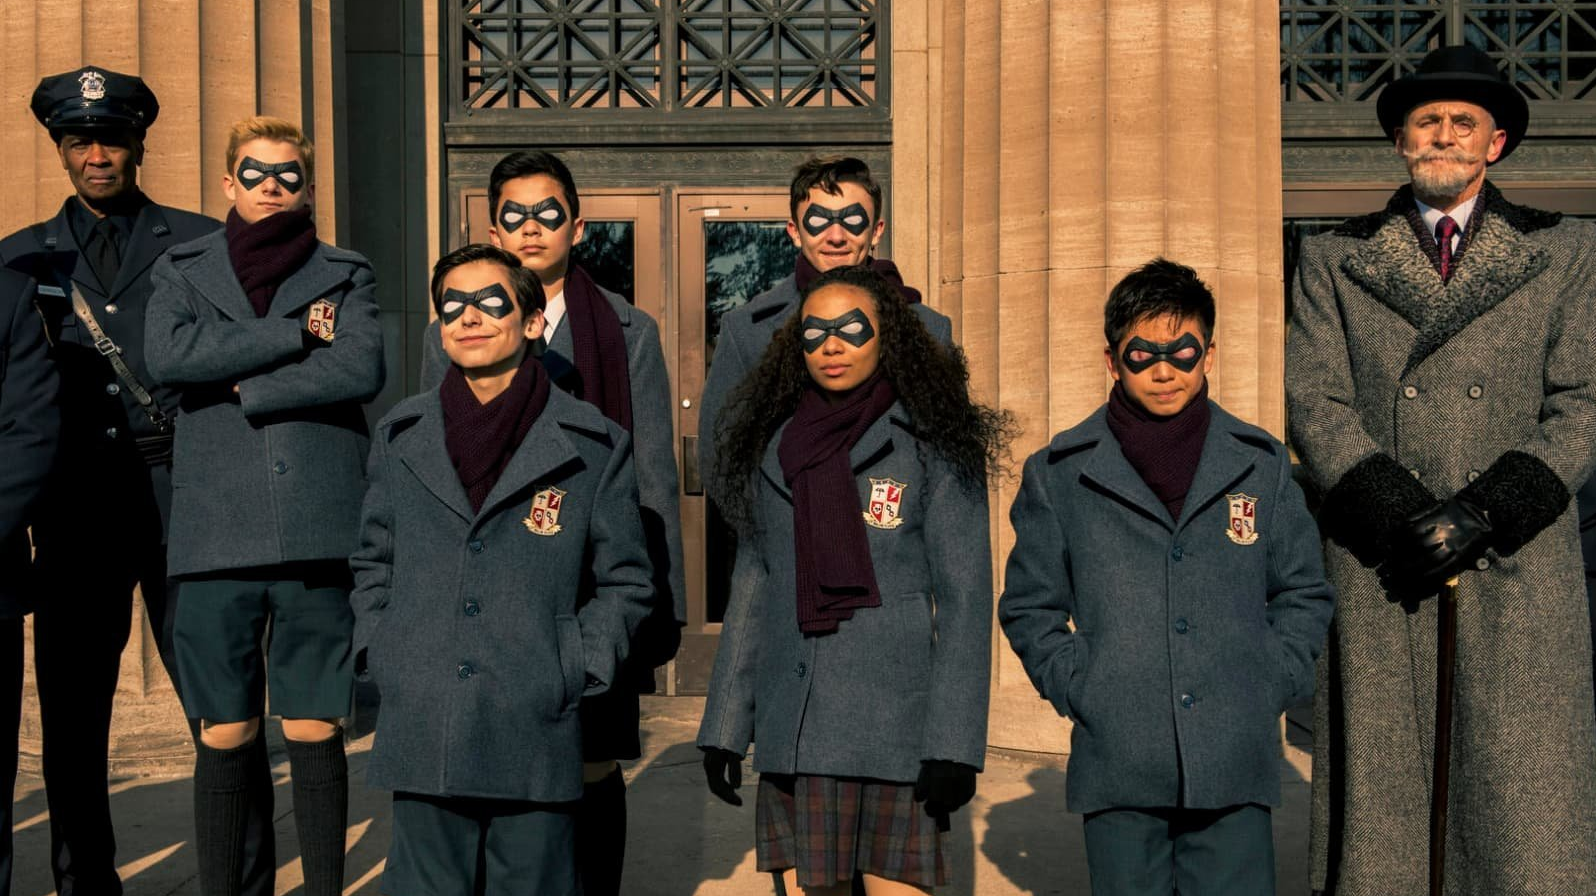 Gerard Way's New Track For Umbrella Academy Is An Absolute Banger